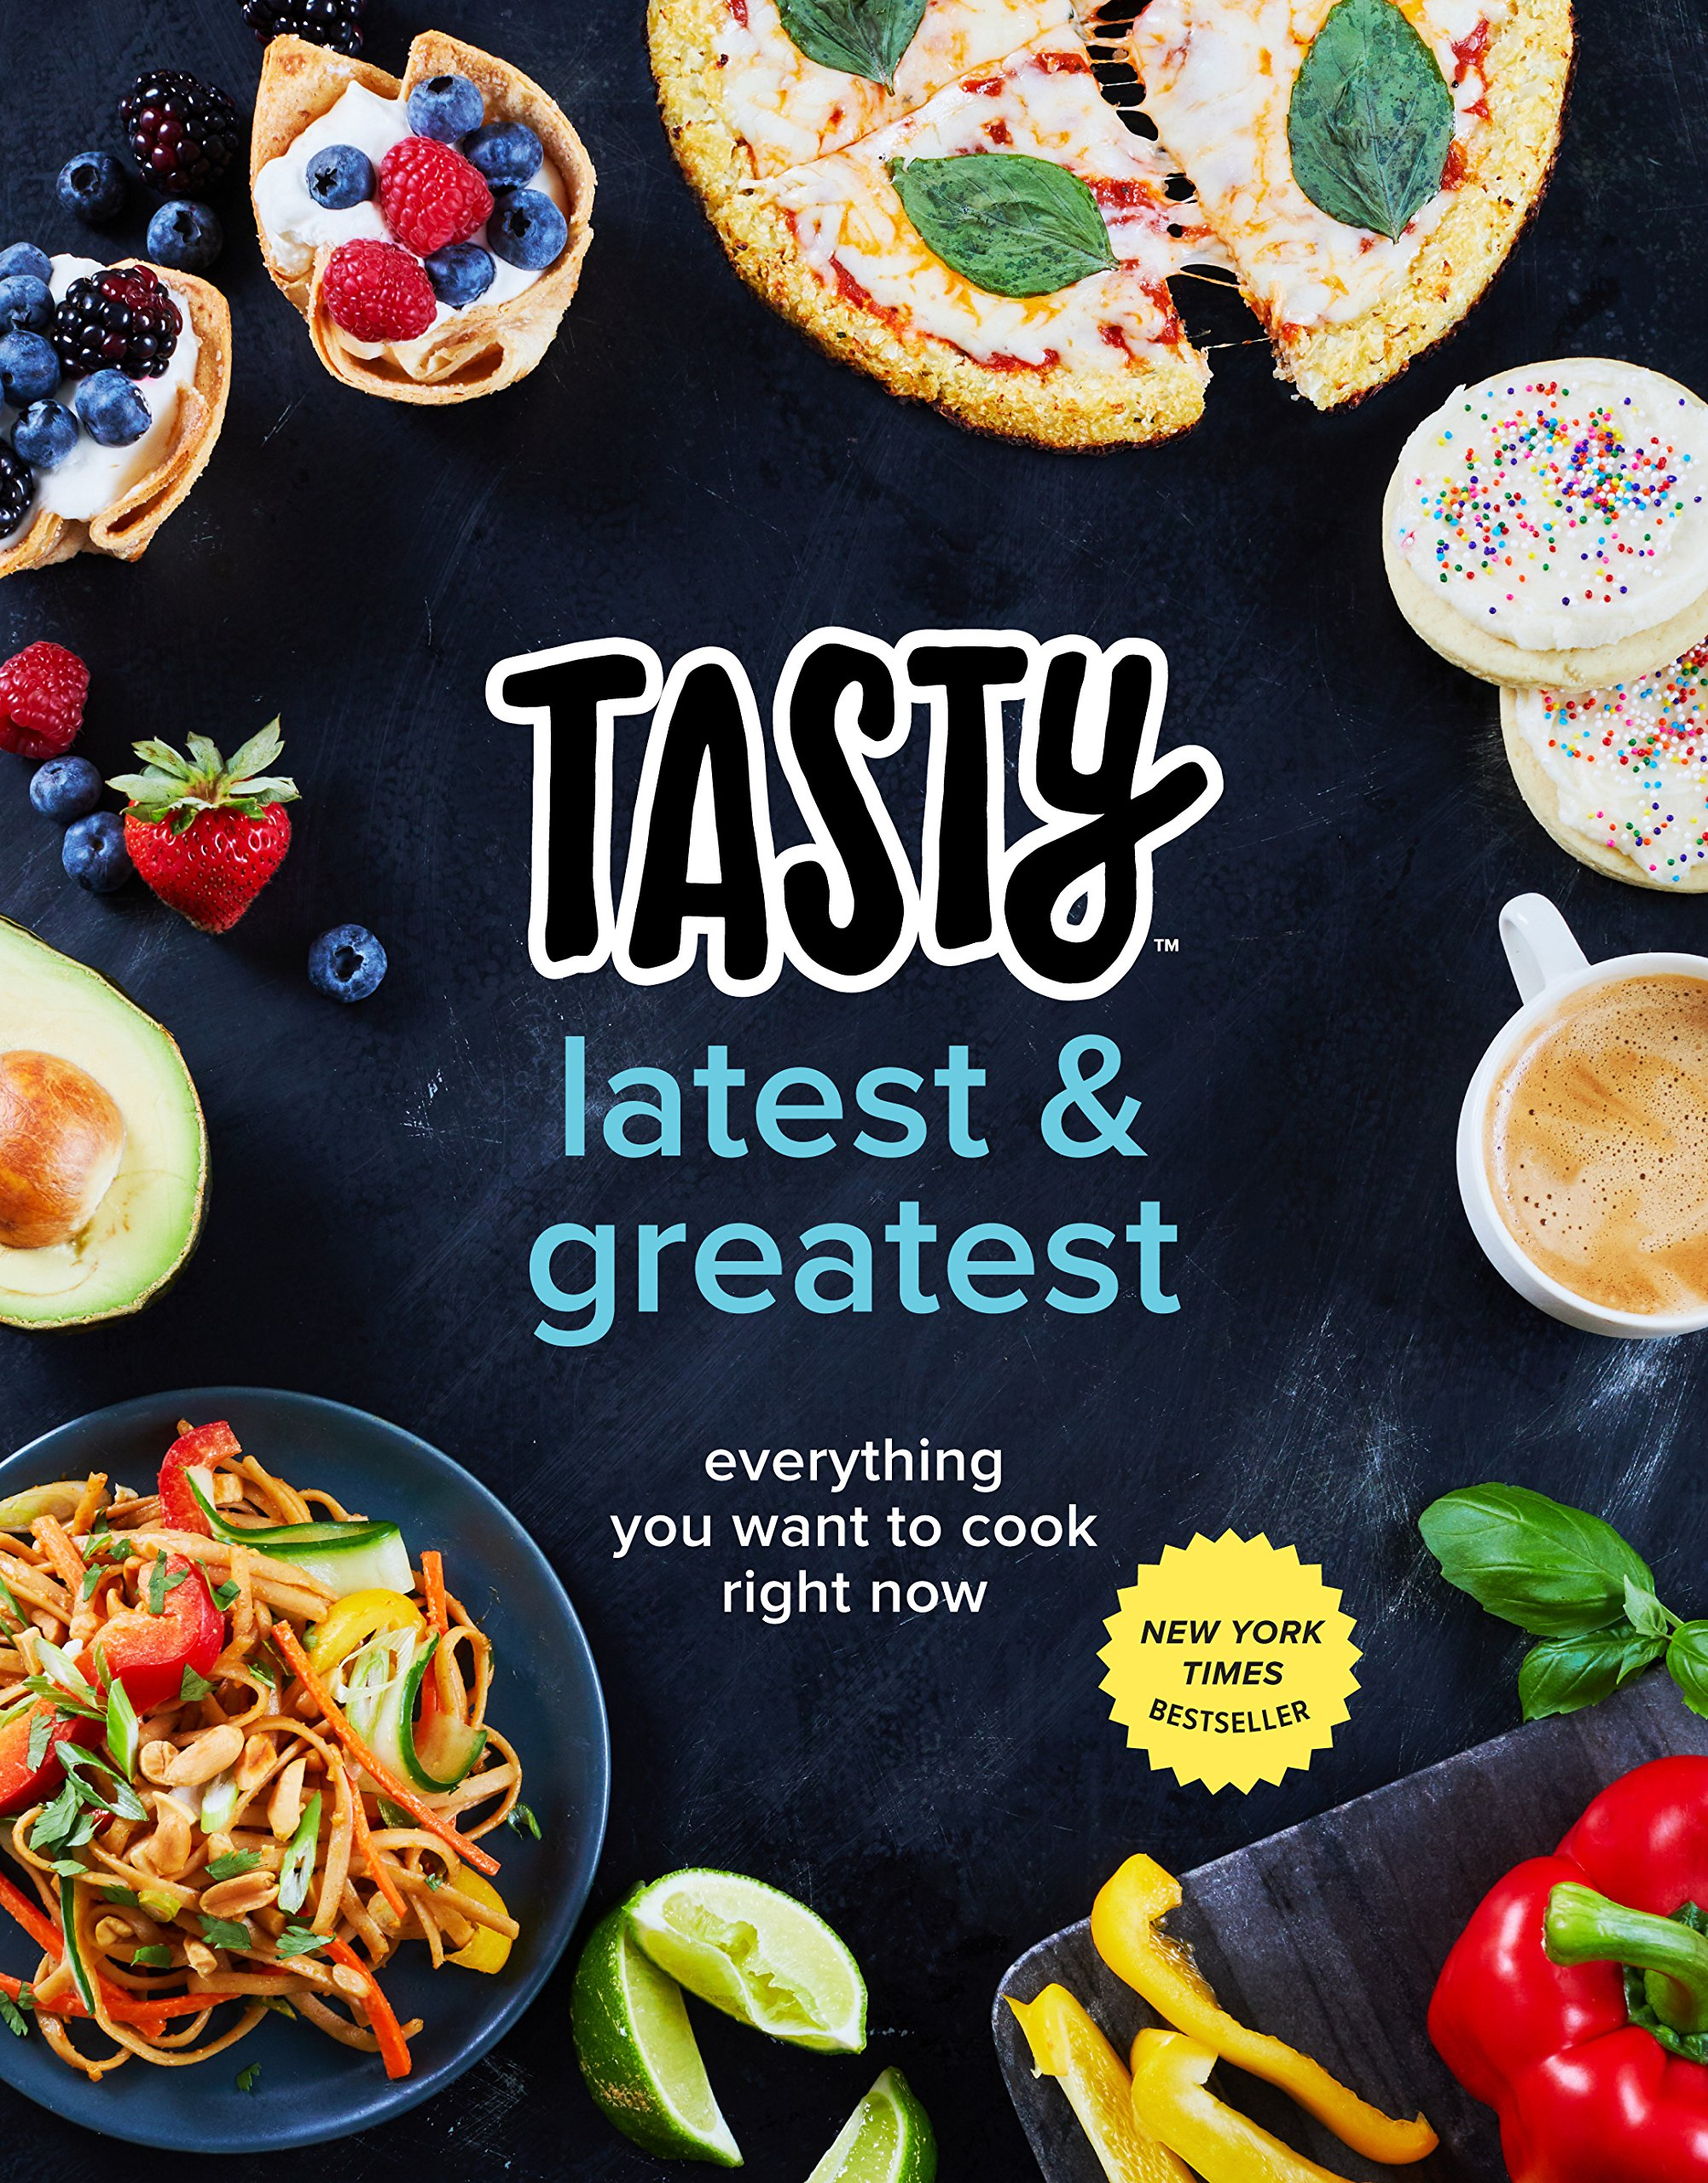 Tasty: Latest & Greatest {A Cookbook Review}